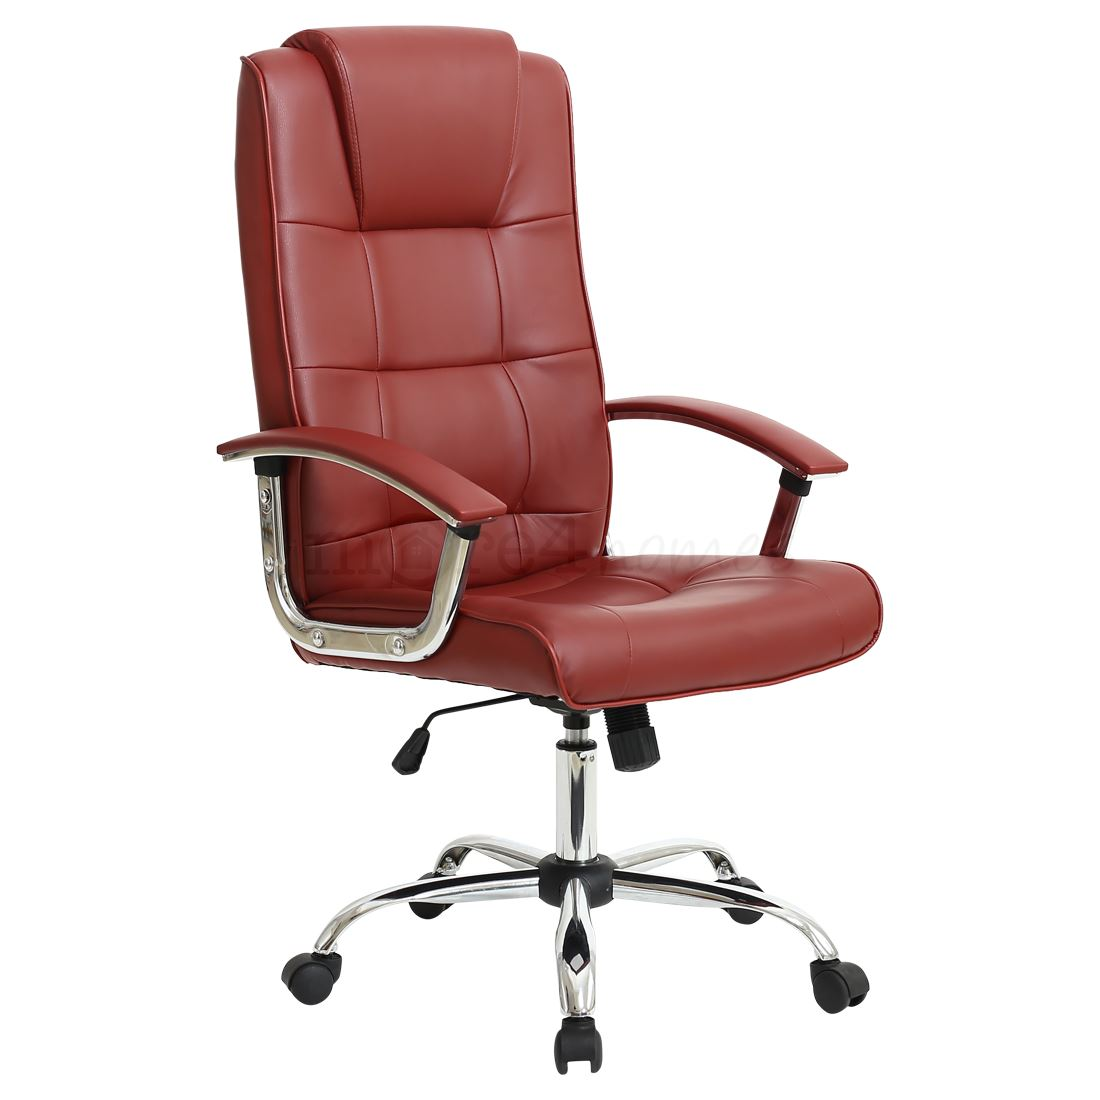 high desk chair zero gravity lounge cover grande back executive leather office computer